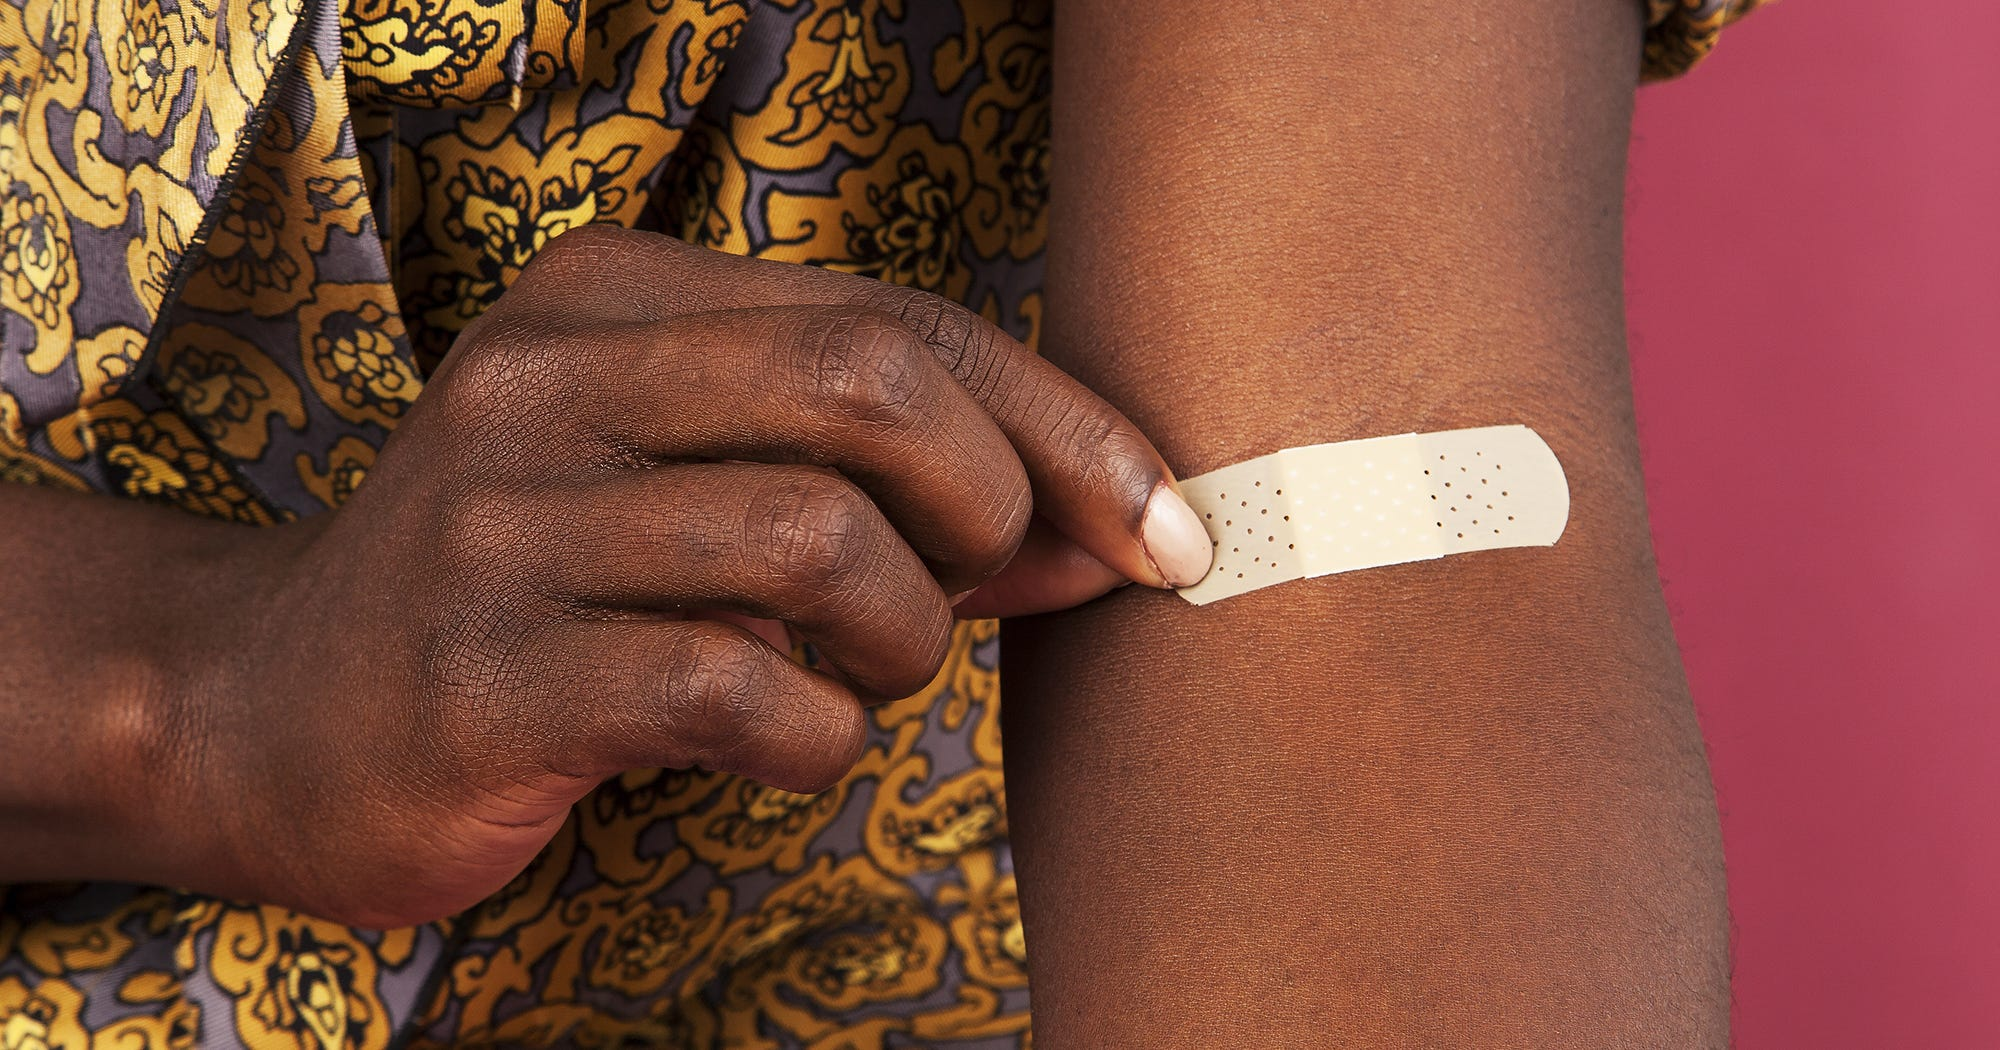 Why This Blood Donation Service Needs More Black Donors